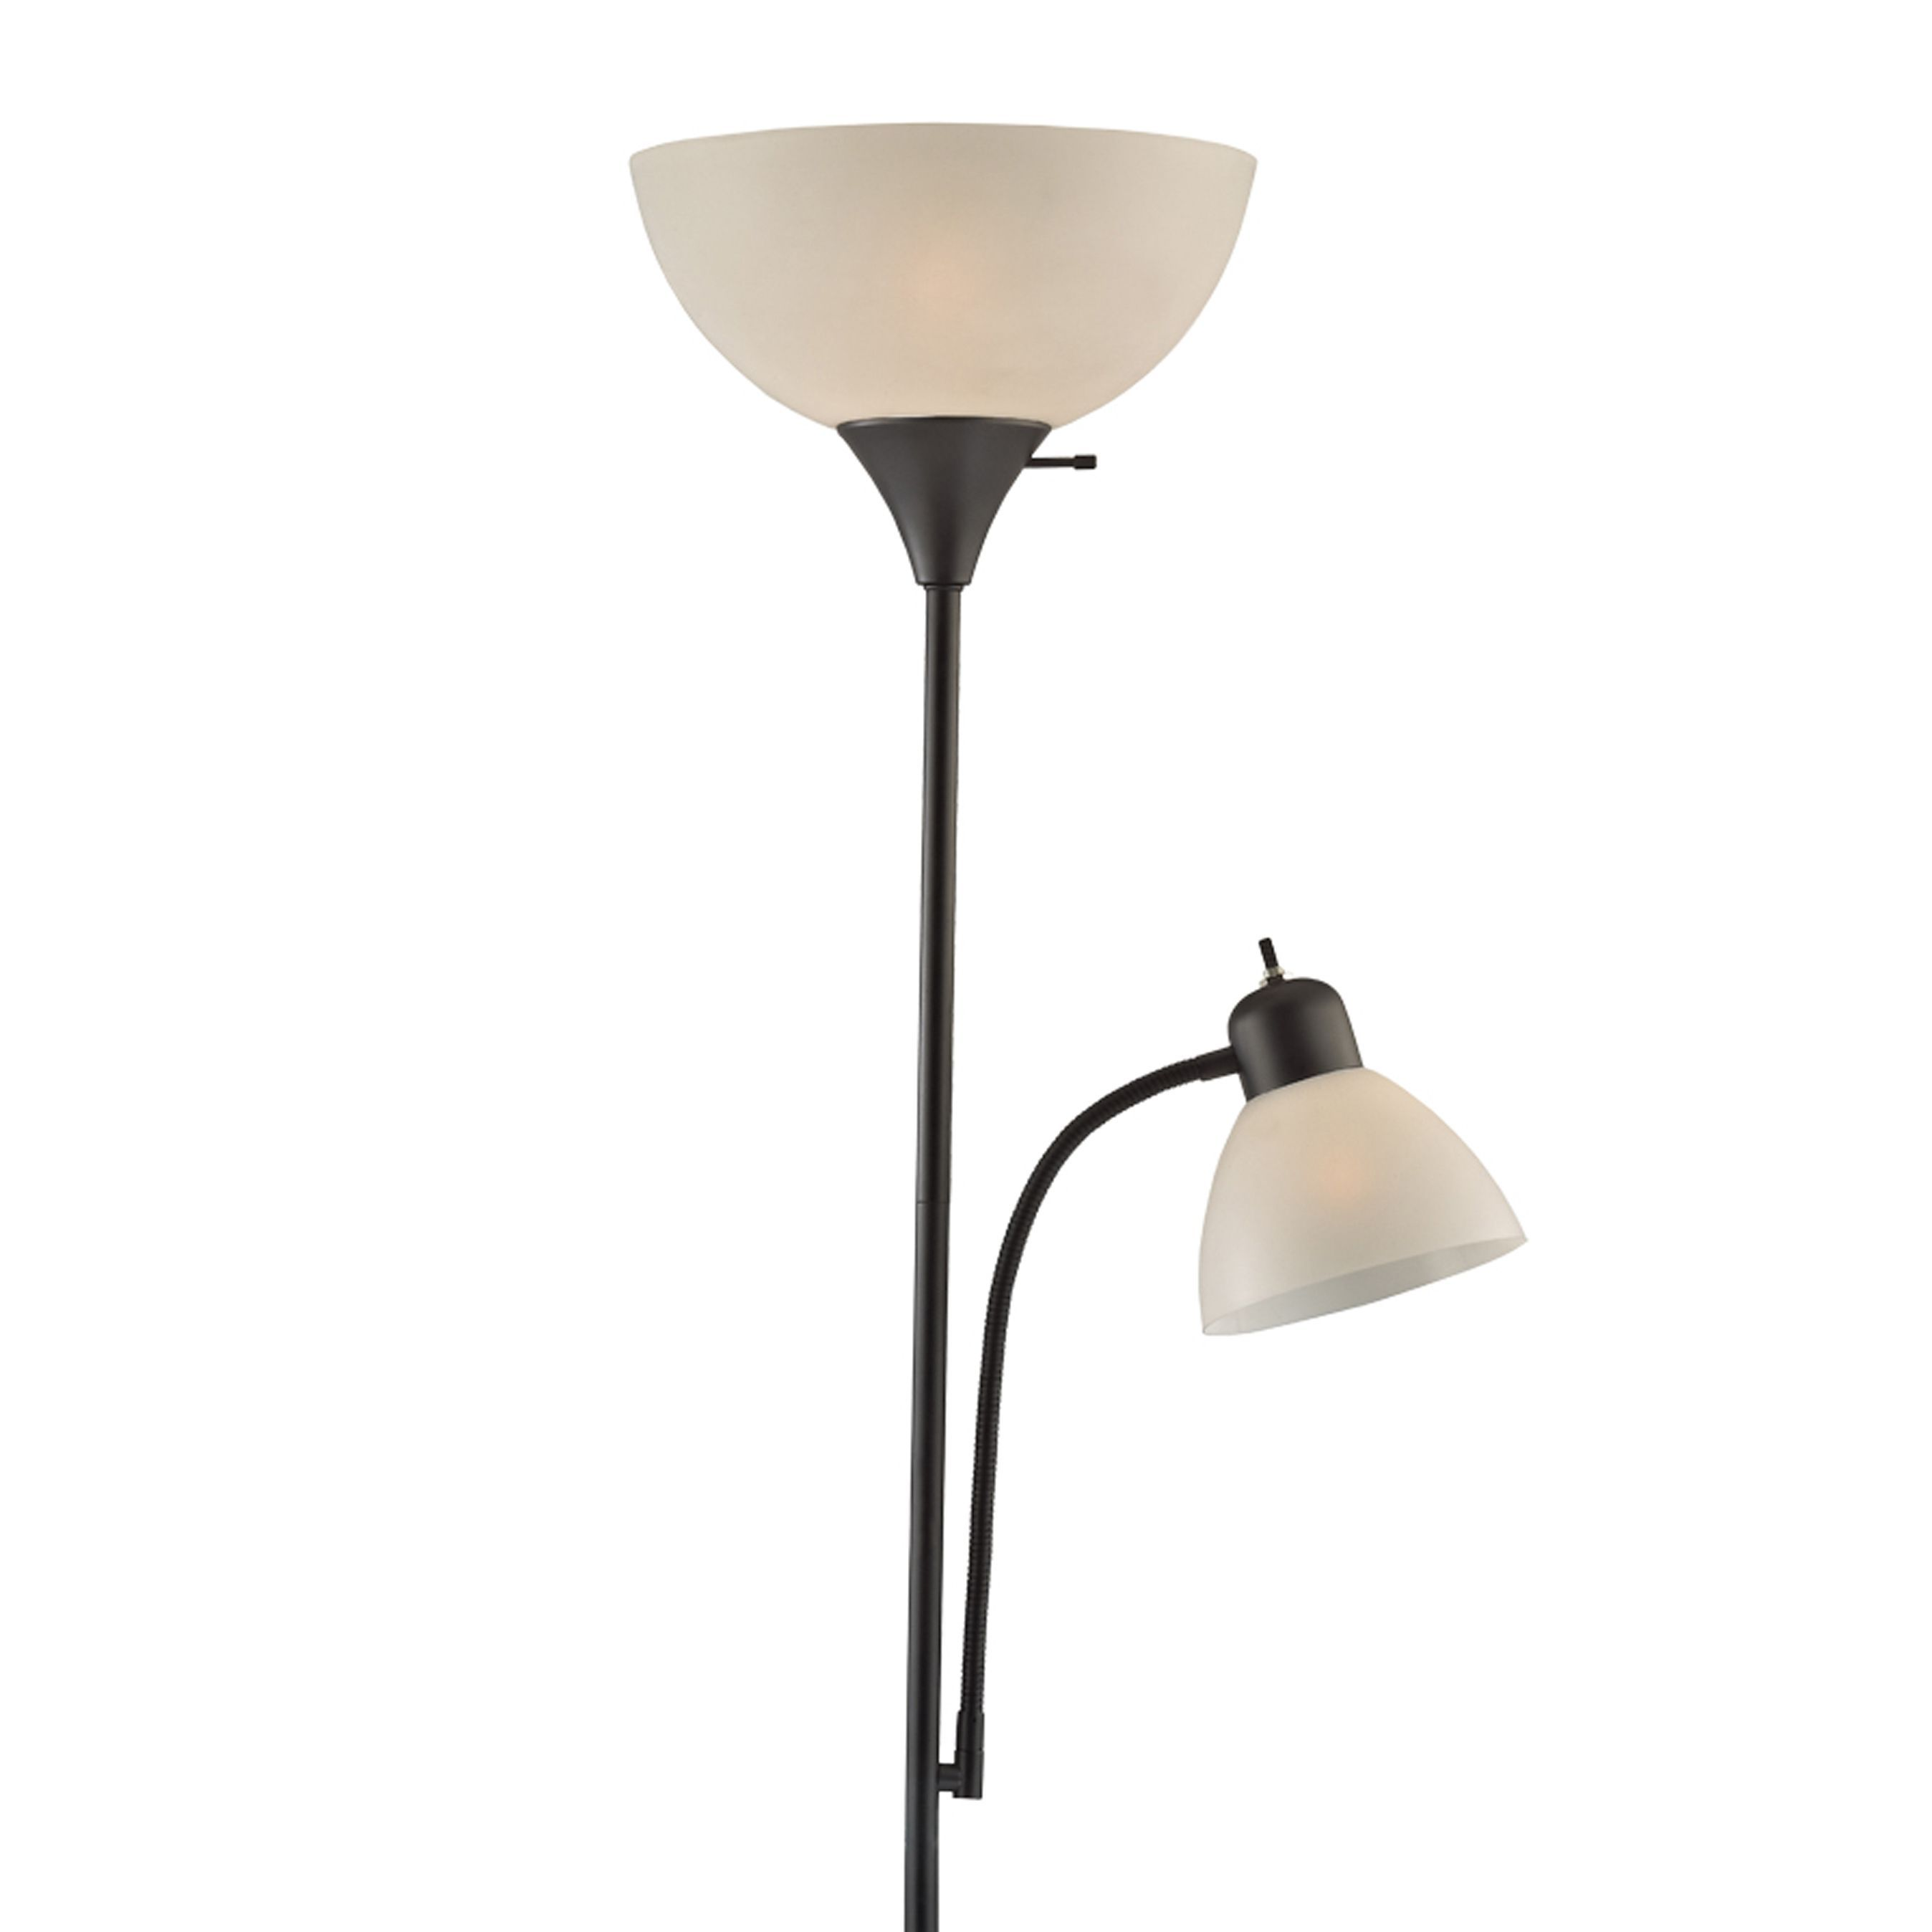 ffee48997e19d8aa57b4946bac067cdf - Better Homes And Gardens Track Tree Floor Lamp